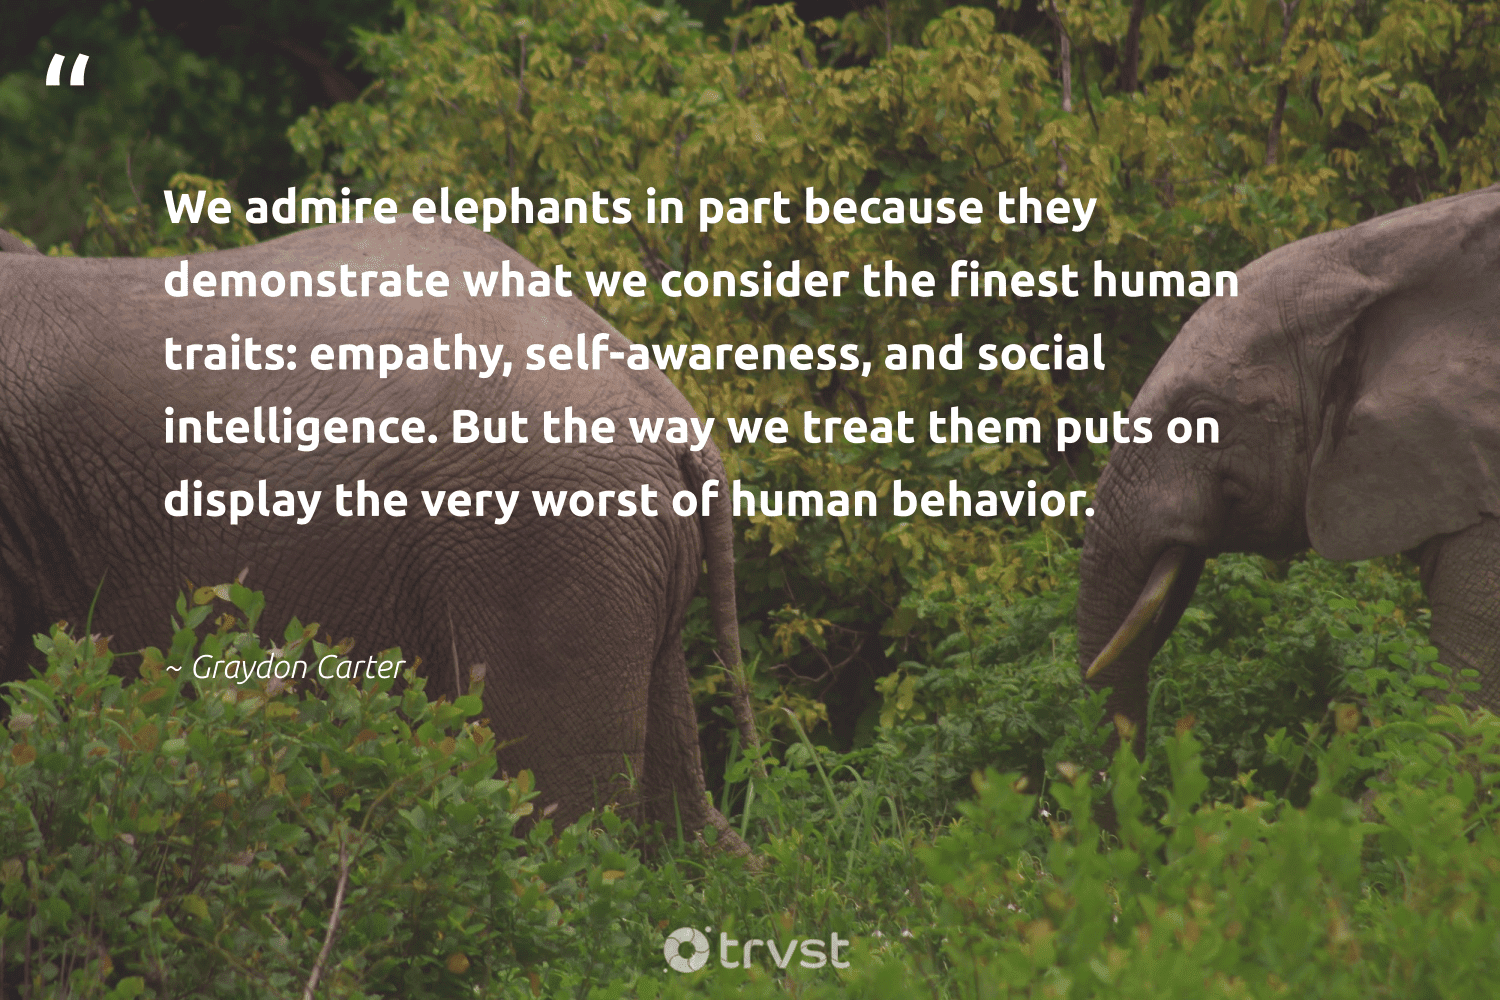 """""""We admire elephants in part because they demonstrate what we consider the finest human traits: empathy, self-awareness, and social intelligence. But the way we treat them puts on display the very worst of human behavior.""""  - Graydon Carter #trvst #quotes #elephants #naturelovers #collectiveaction #elephantlove #dotherightthing #endangeredspecies #bethechange #conservation #takeaction #wildgeography"""